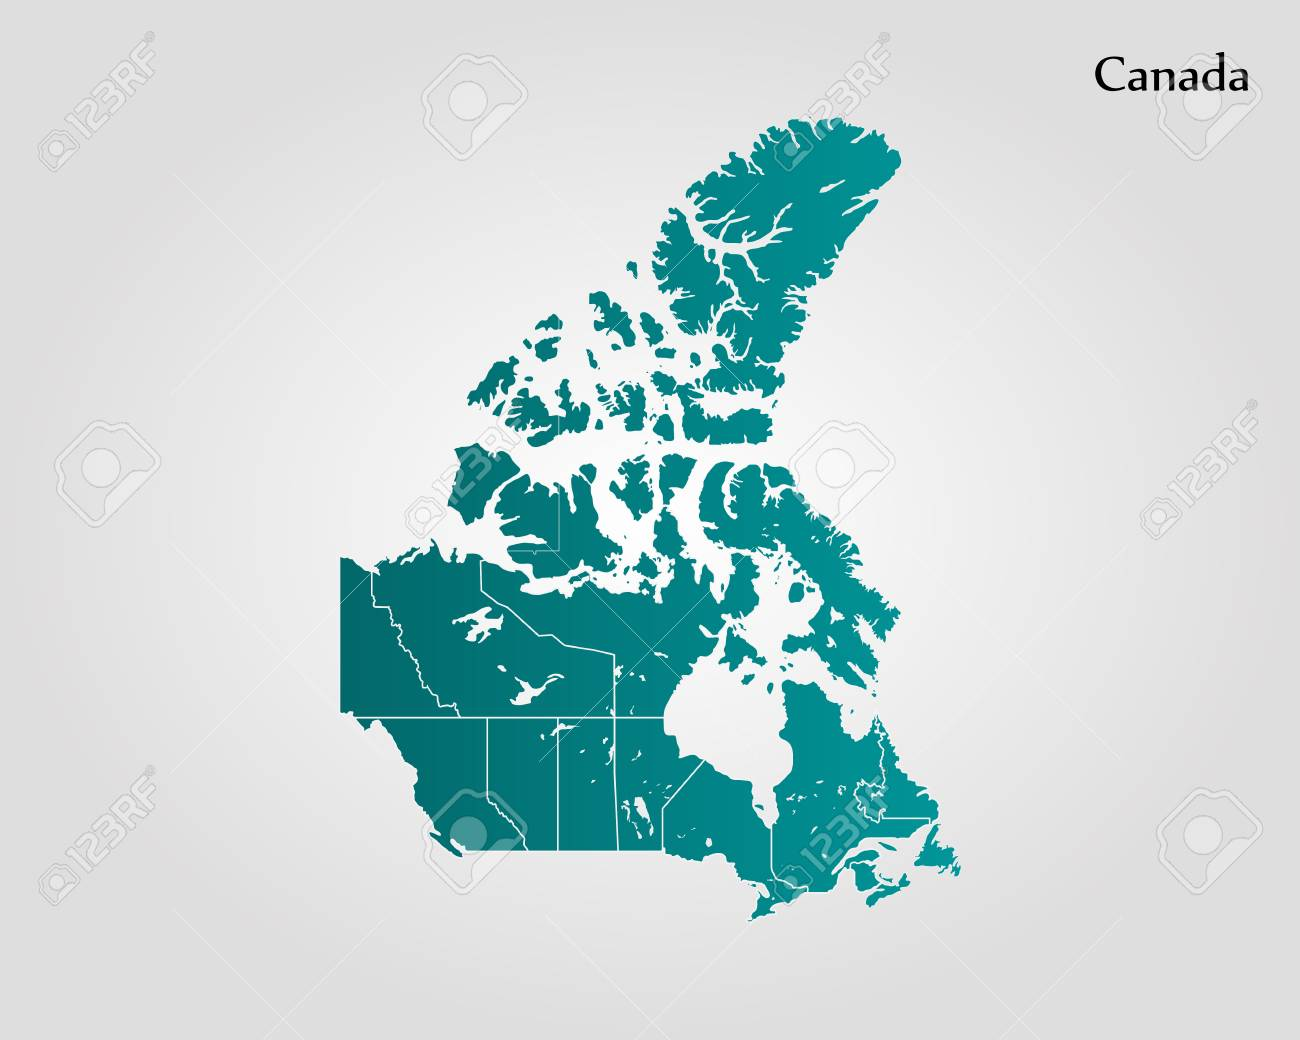 Map of canada vector illustration world map ilustraciones foto de archivo map of canada vector illustration world map gumiabroncs Image collections